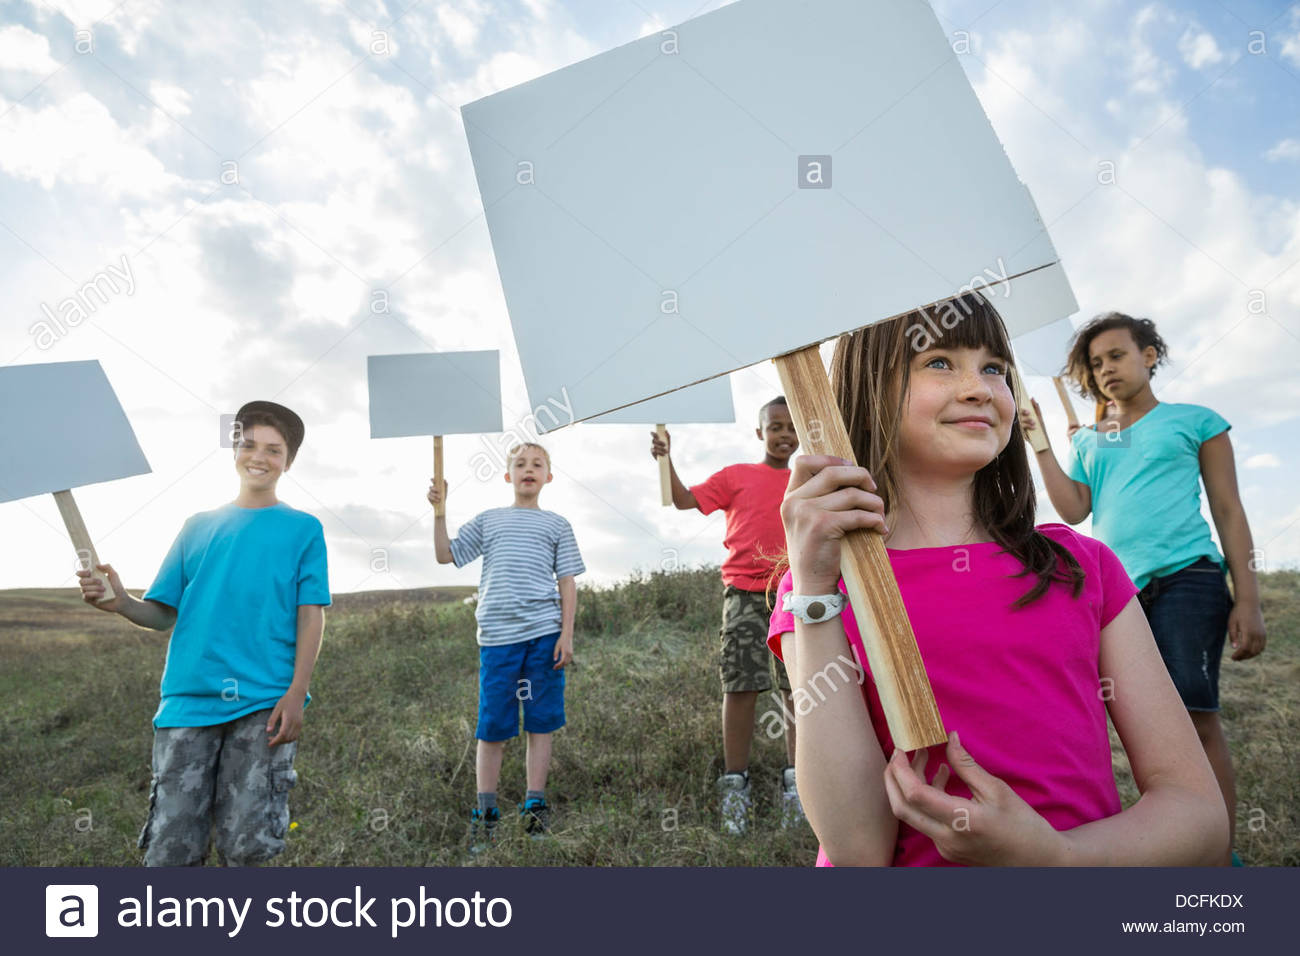 Group of kids holding blank sign boards - Stock Image